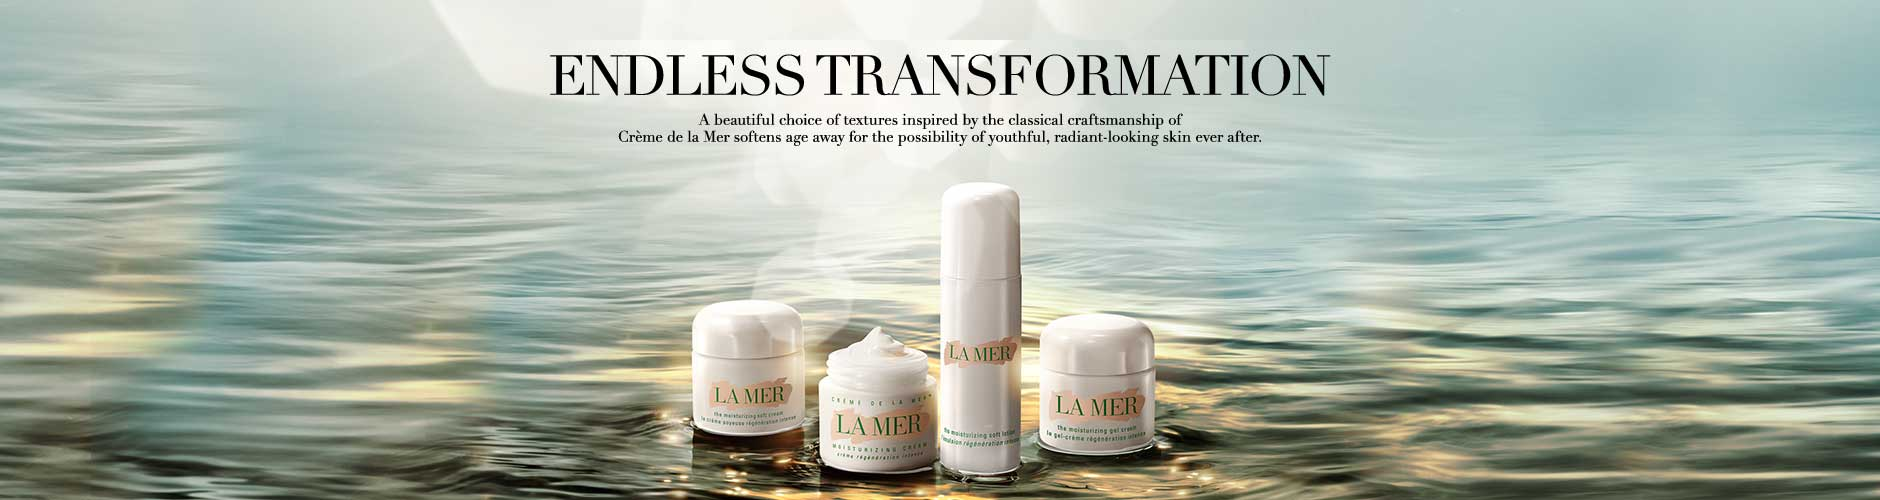 Endless Transformation - Creme de la Mer softens age away for the possibility of youthful, radiant-looking skin ever after.